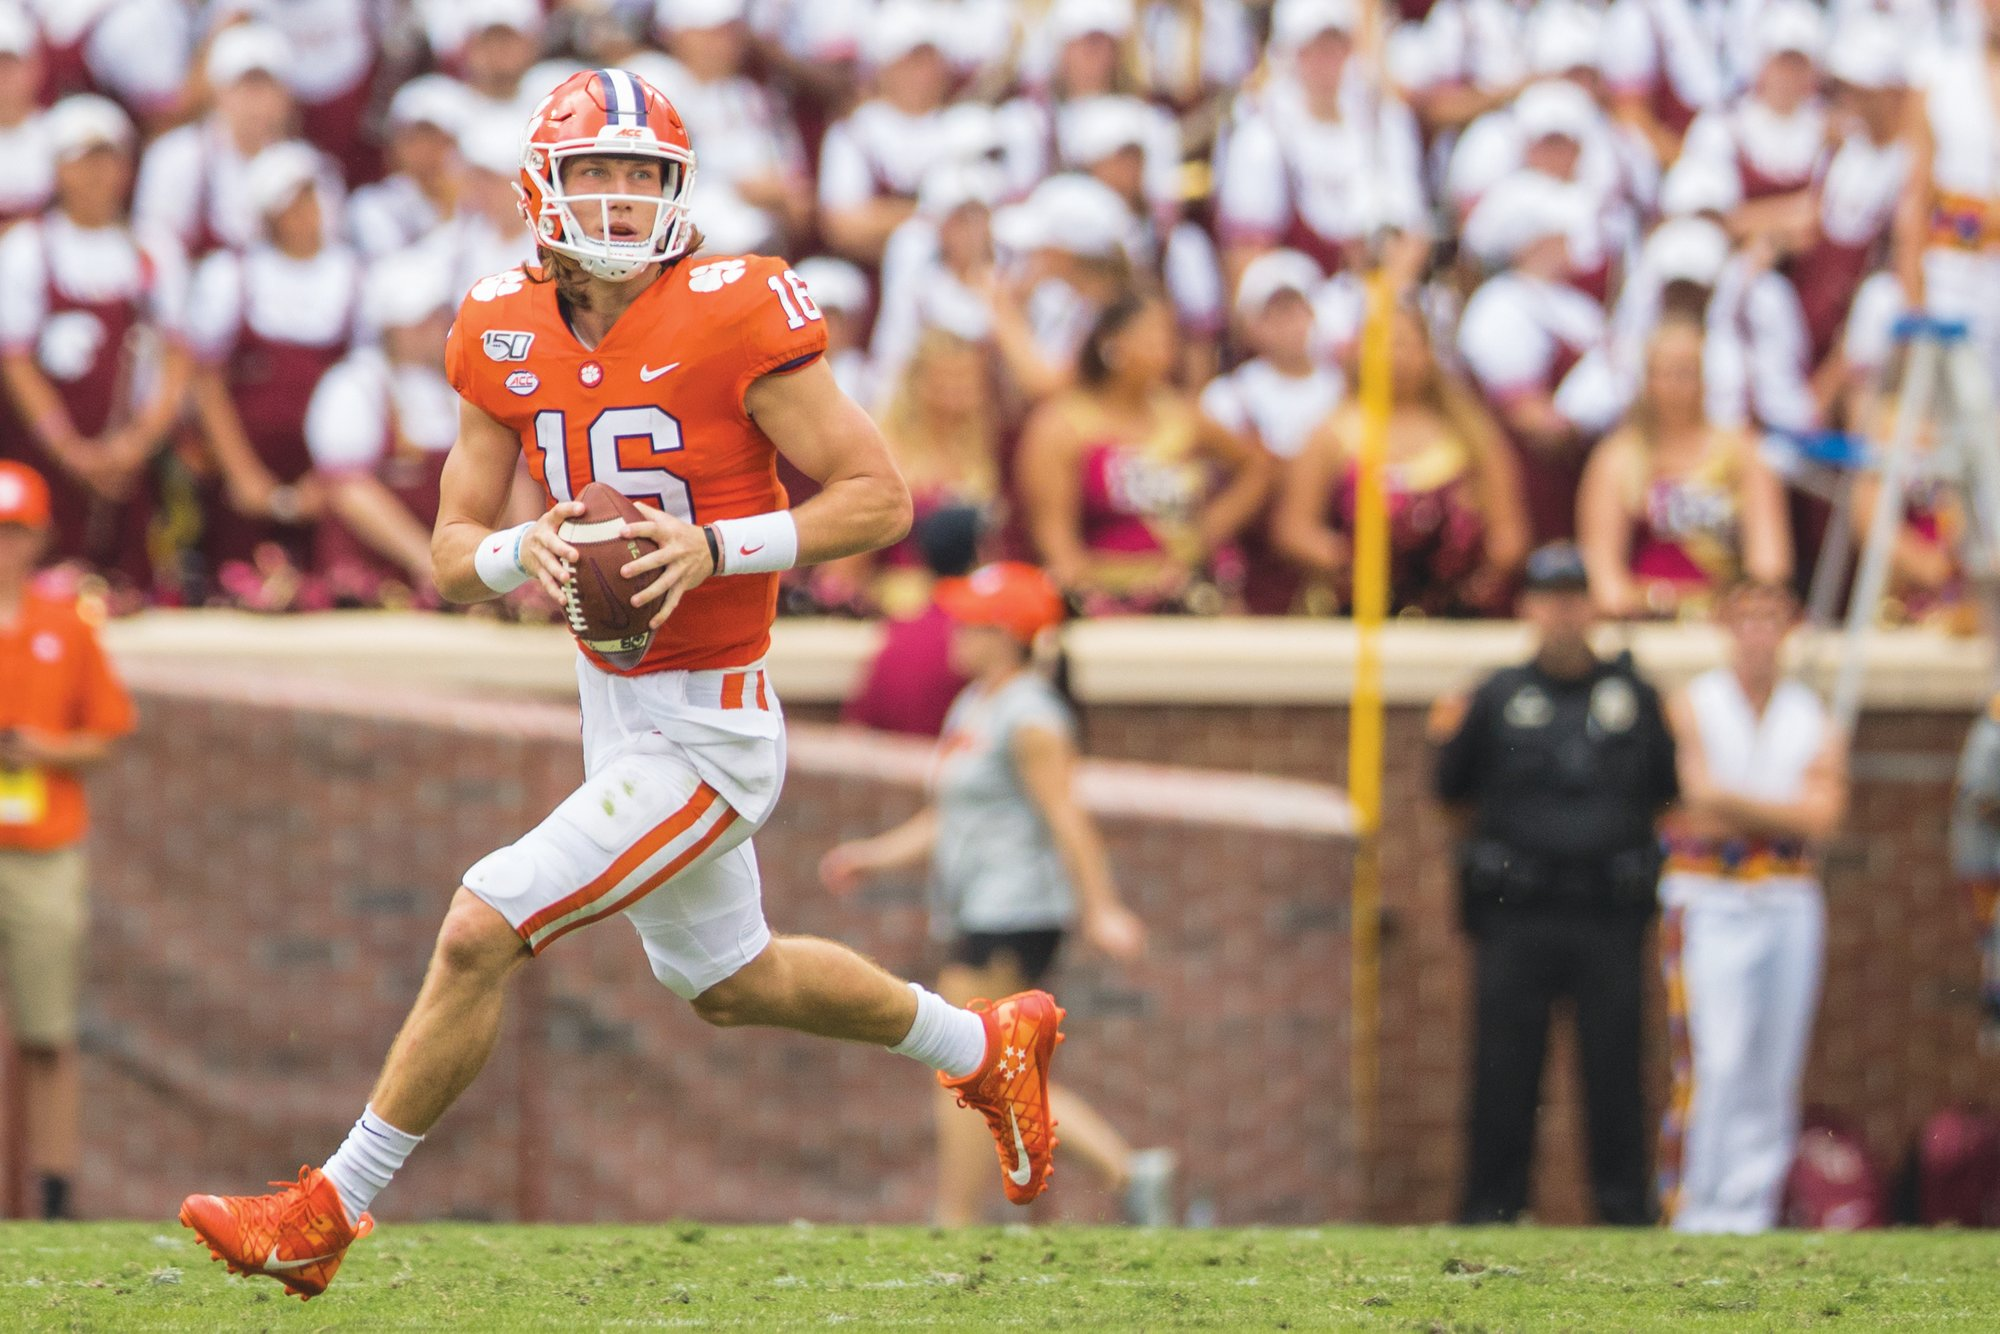 Quarterback Trevor Lawrence and the Clemson Tigers continue to fall in The Associated Press Top 25 poll despite still being undefeated. Clemson was ranked No. 1 but has dropped one spot in each of the last three weeks.